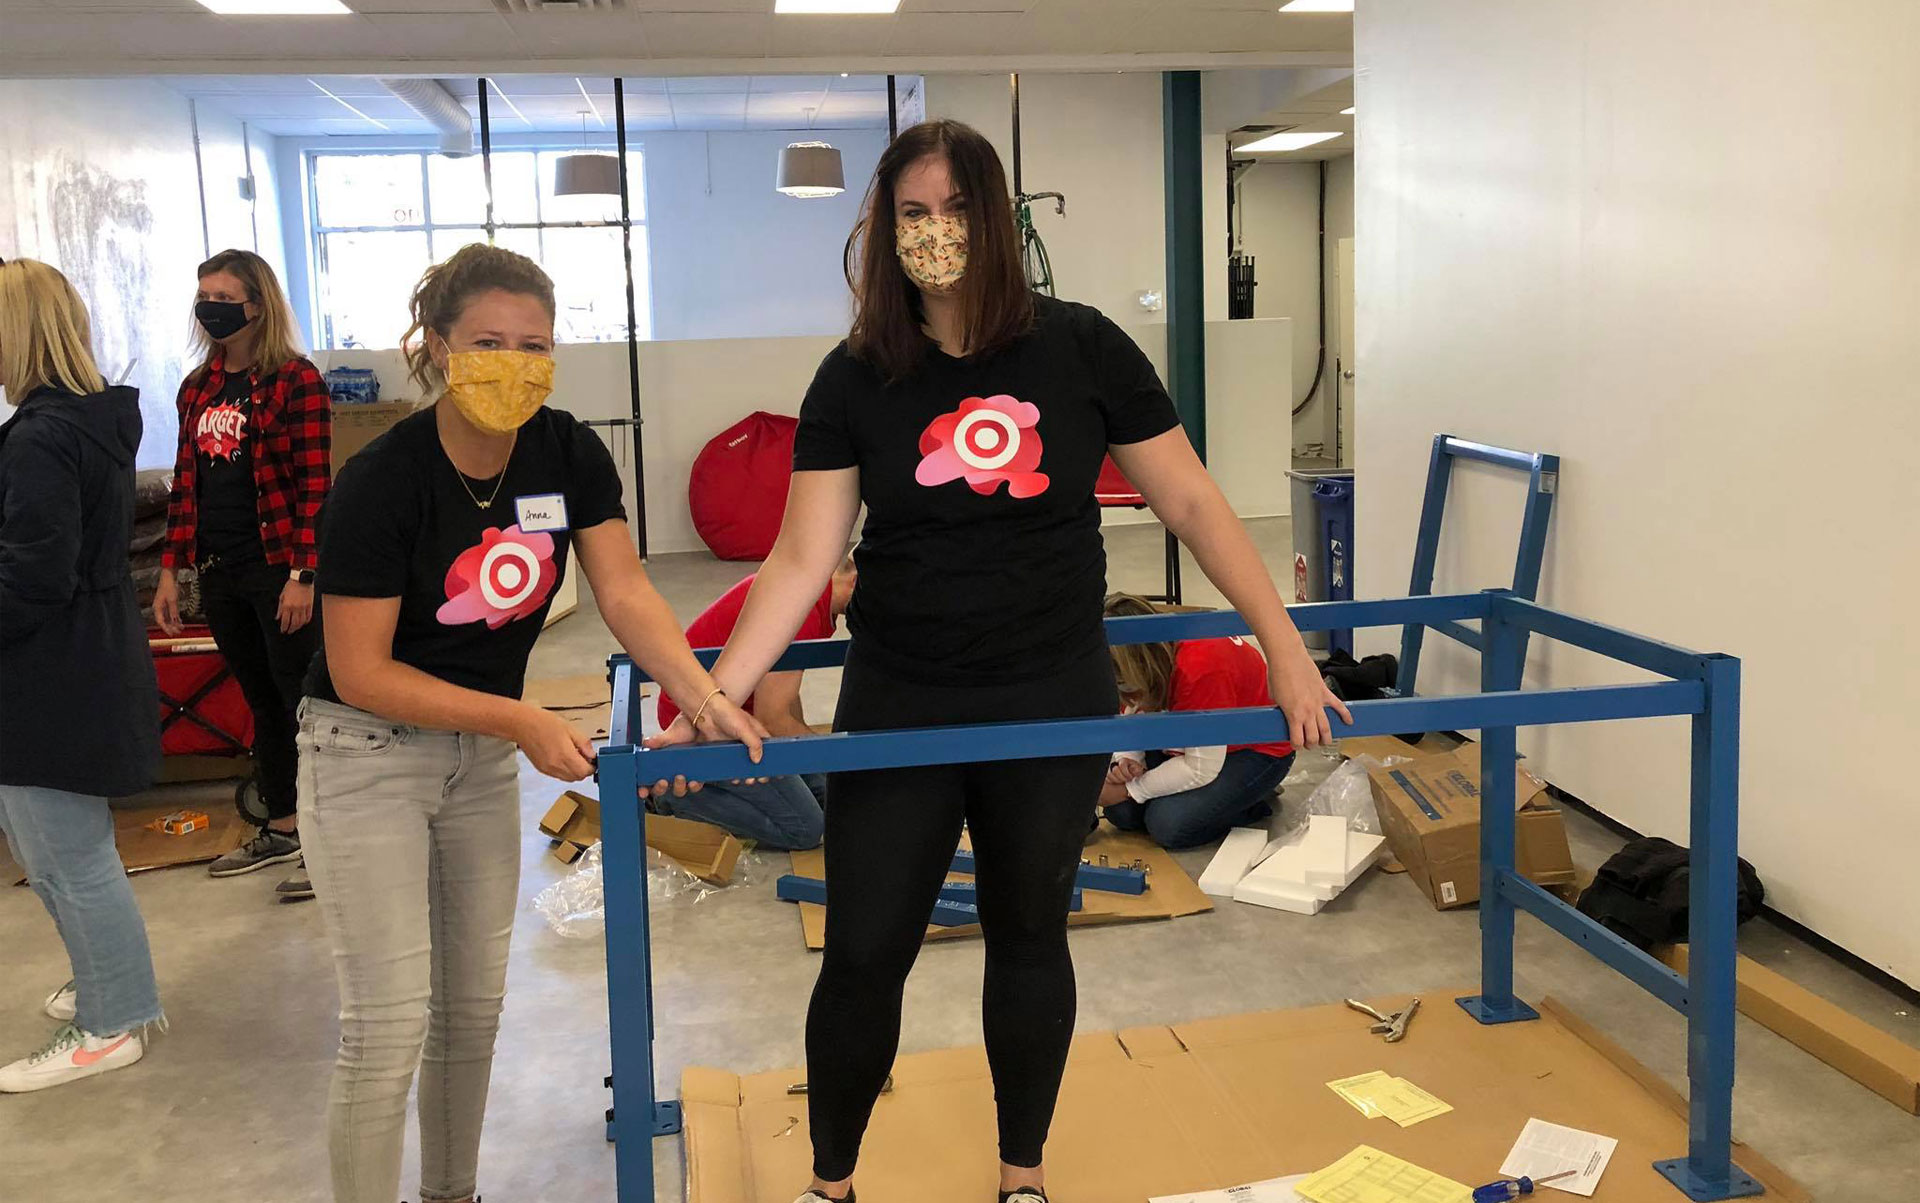 Two people, wearing masks, working together to build a table, posing for a picture